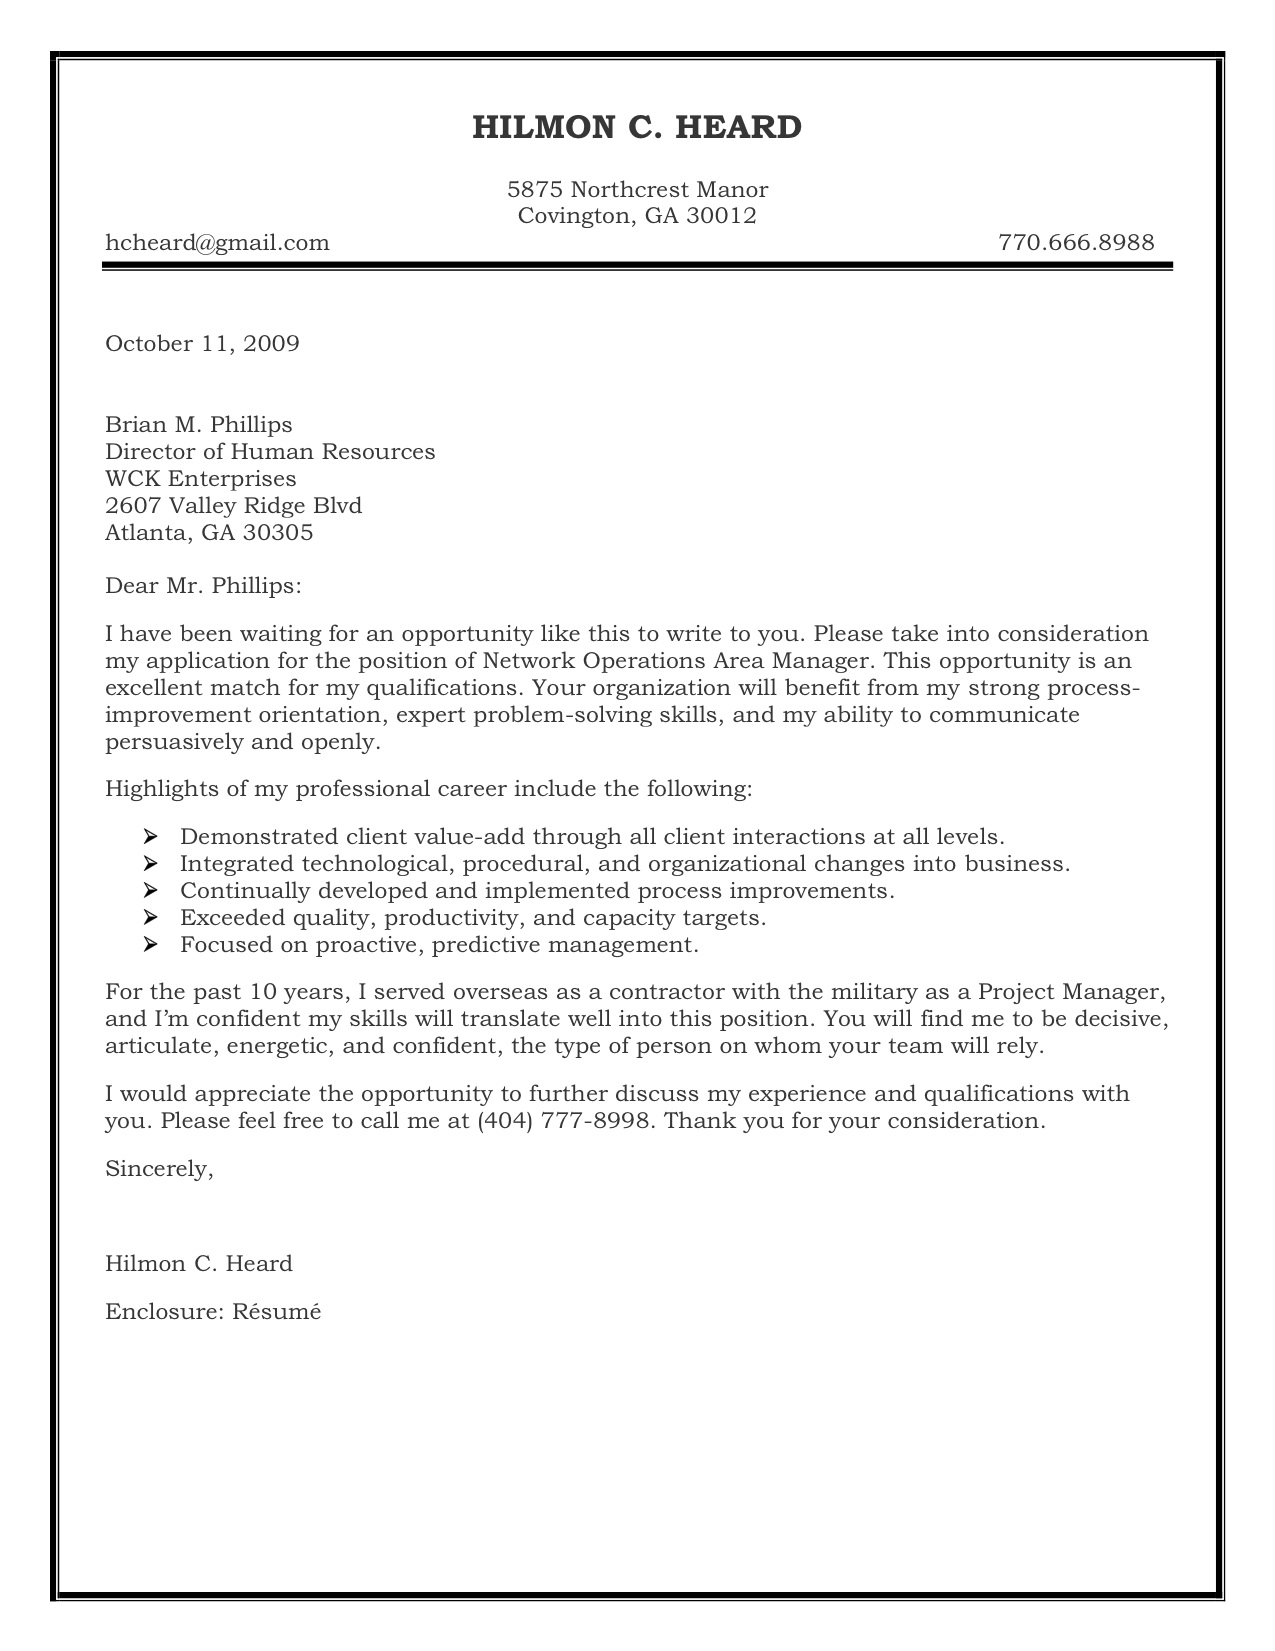 how to write a cover letter purdue - gse.bookbinder.co, Presentation templates